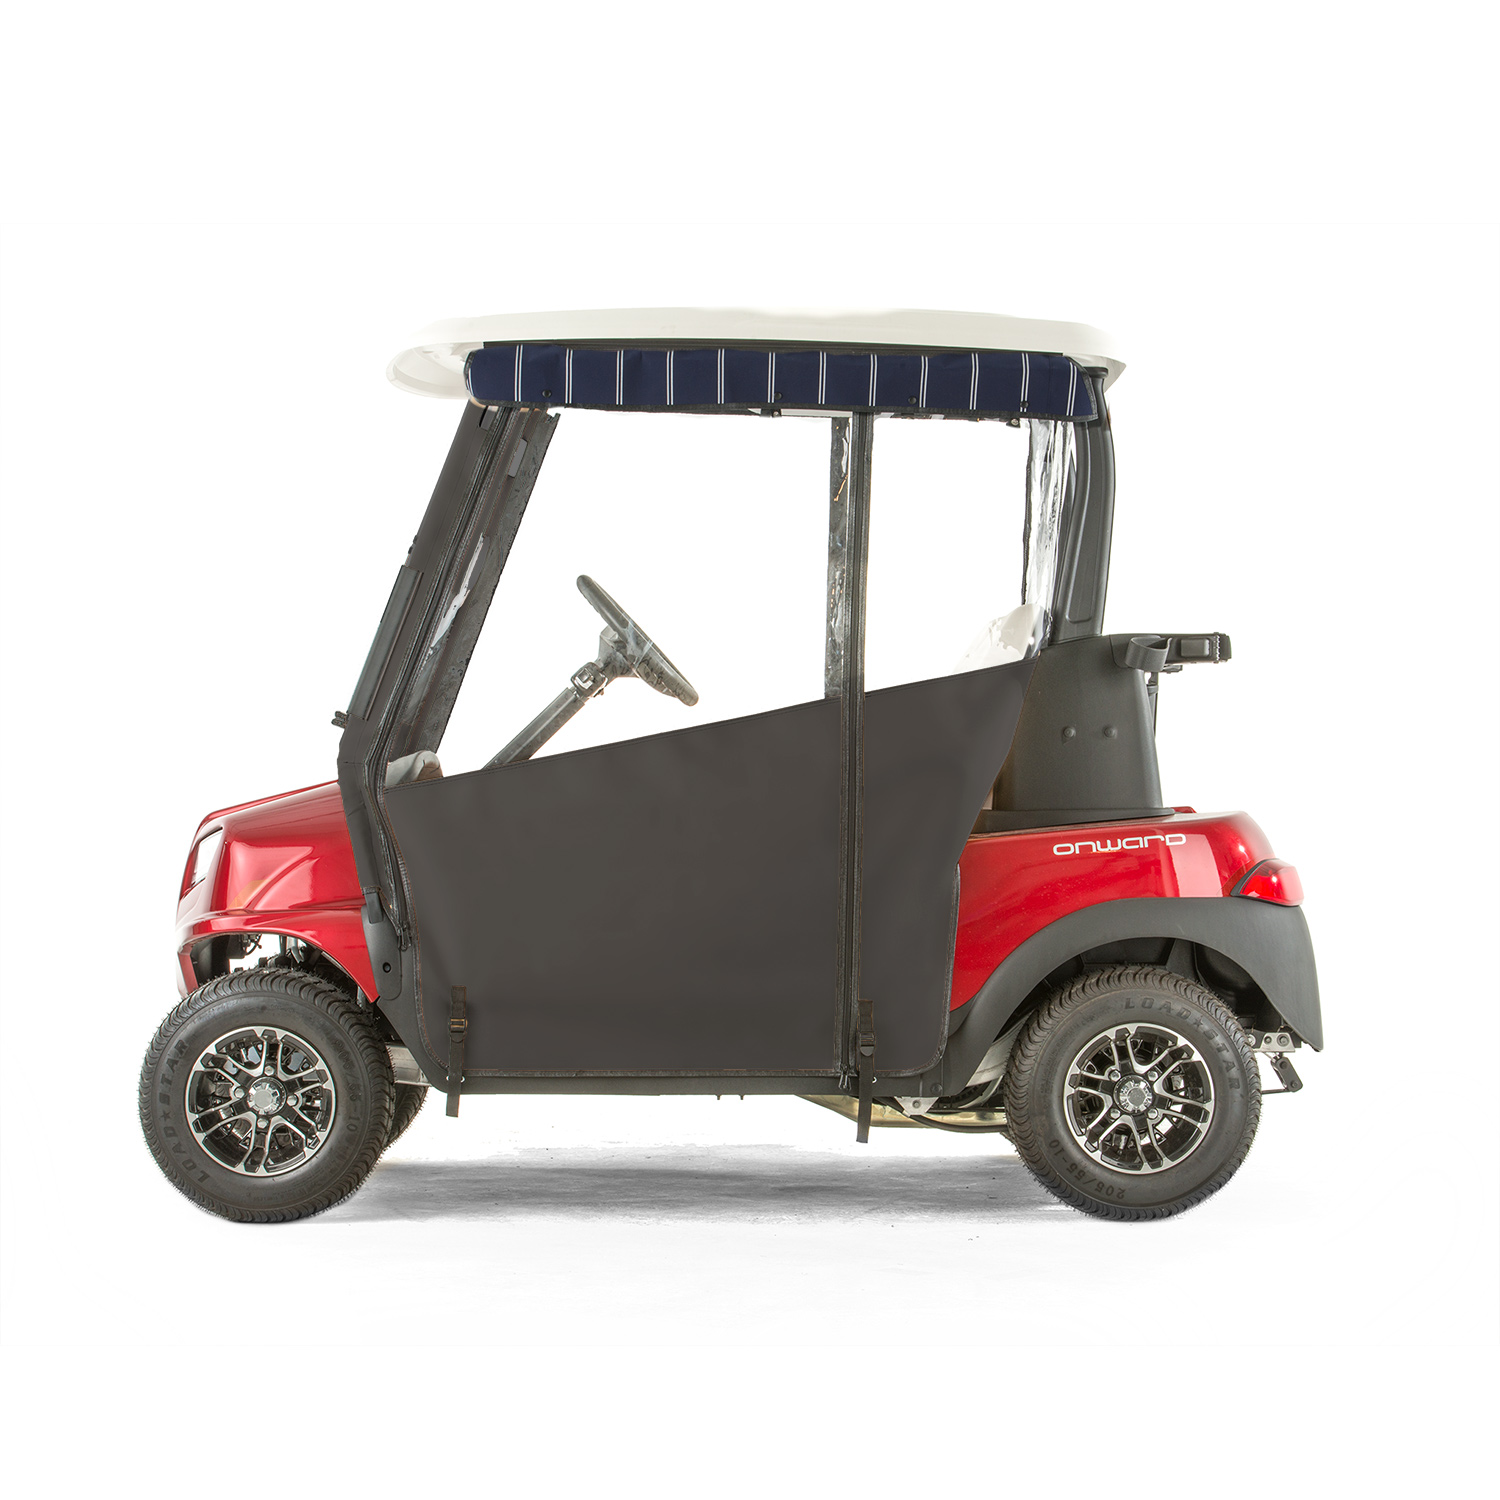 Club-Car-Onward-Golf-Cart-PRO-TOURING-Sunbrella-